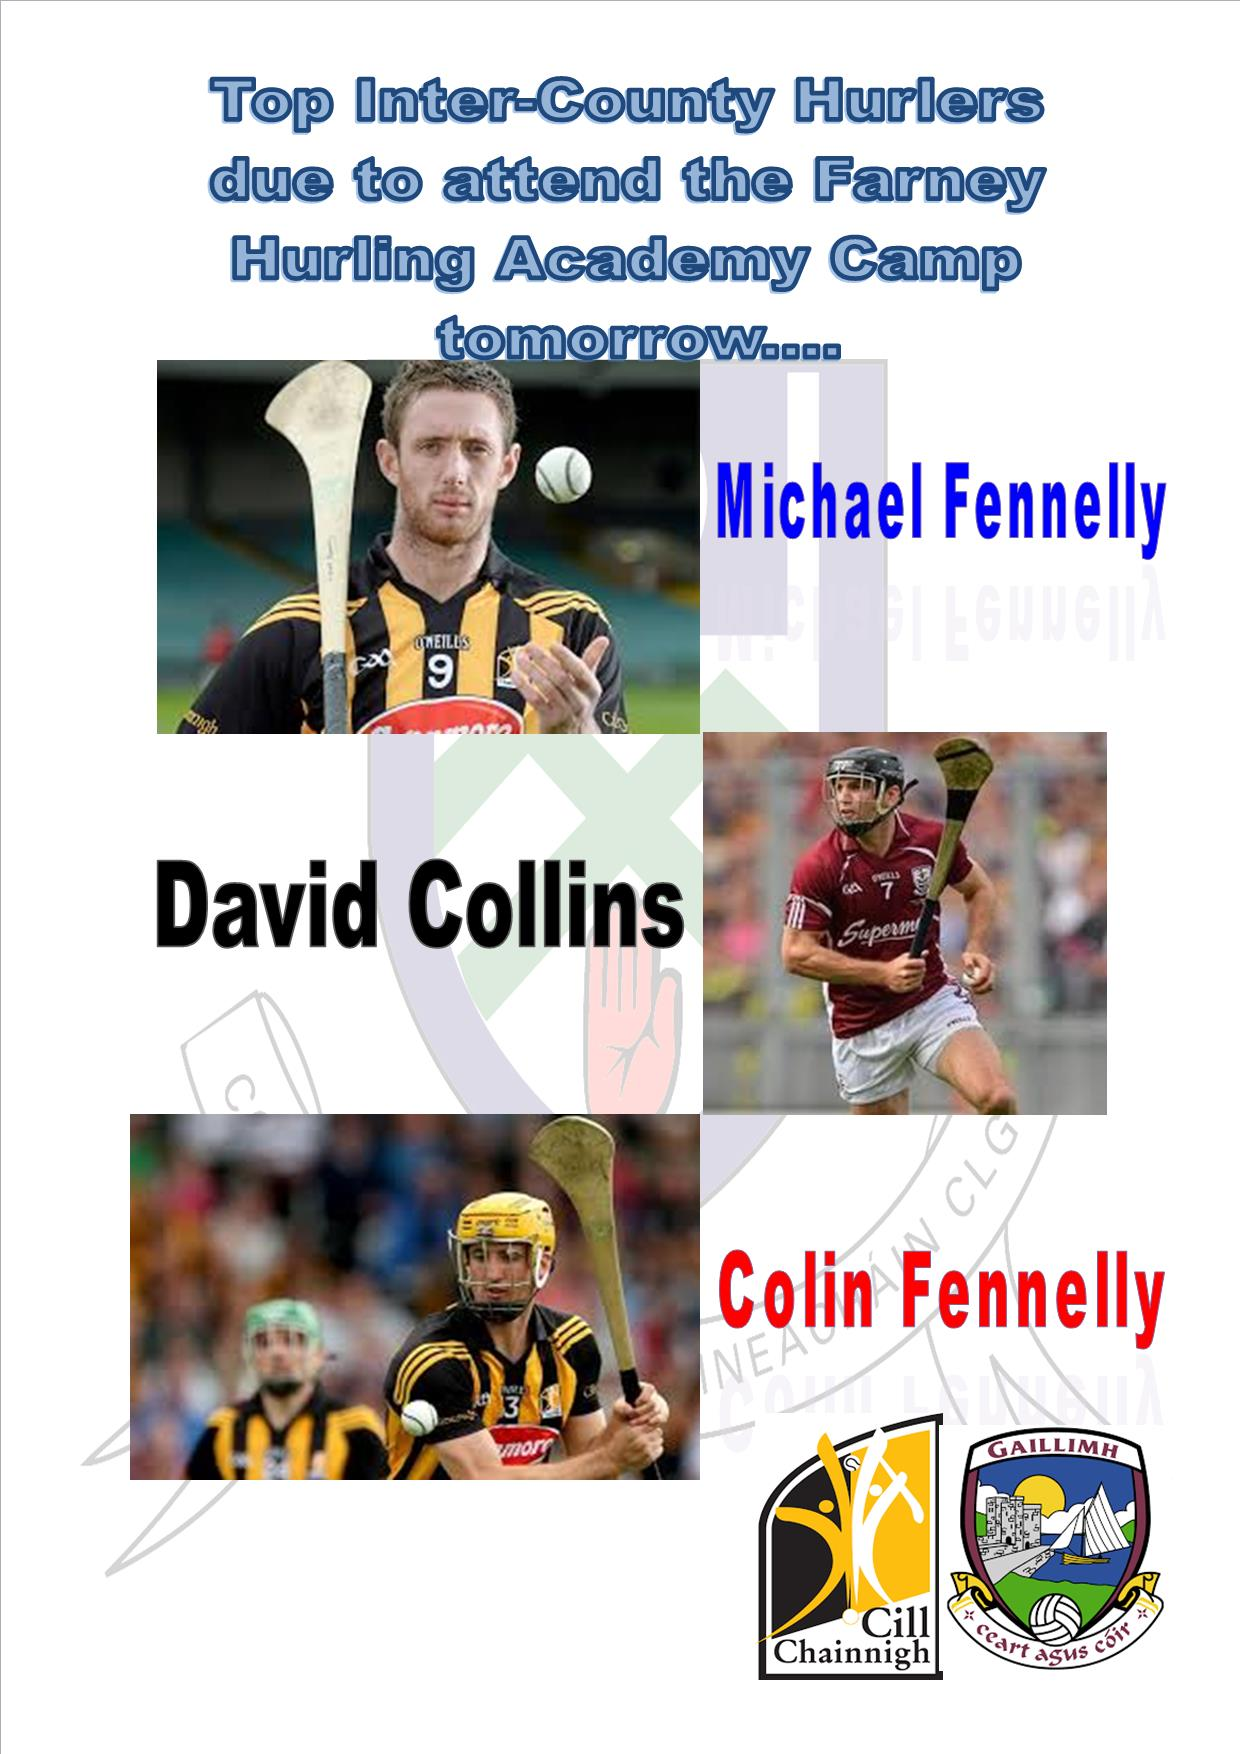 Farney Hurling Academy to welcome top Inter-County Hurlers